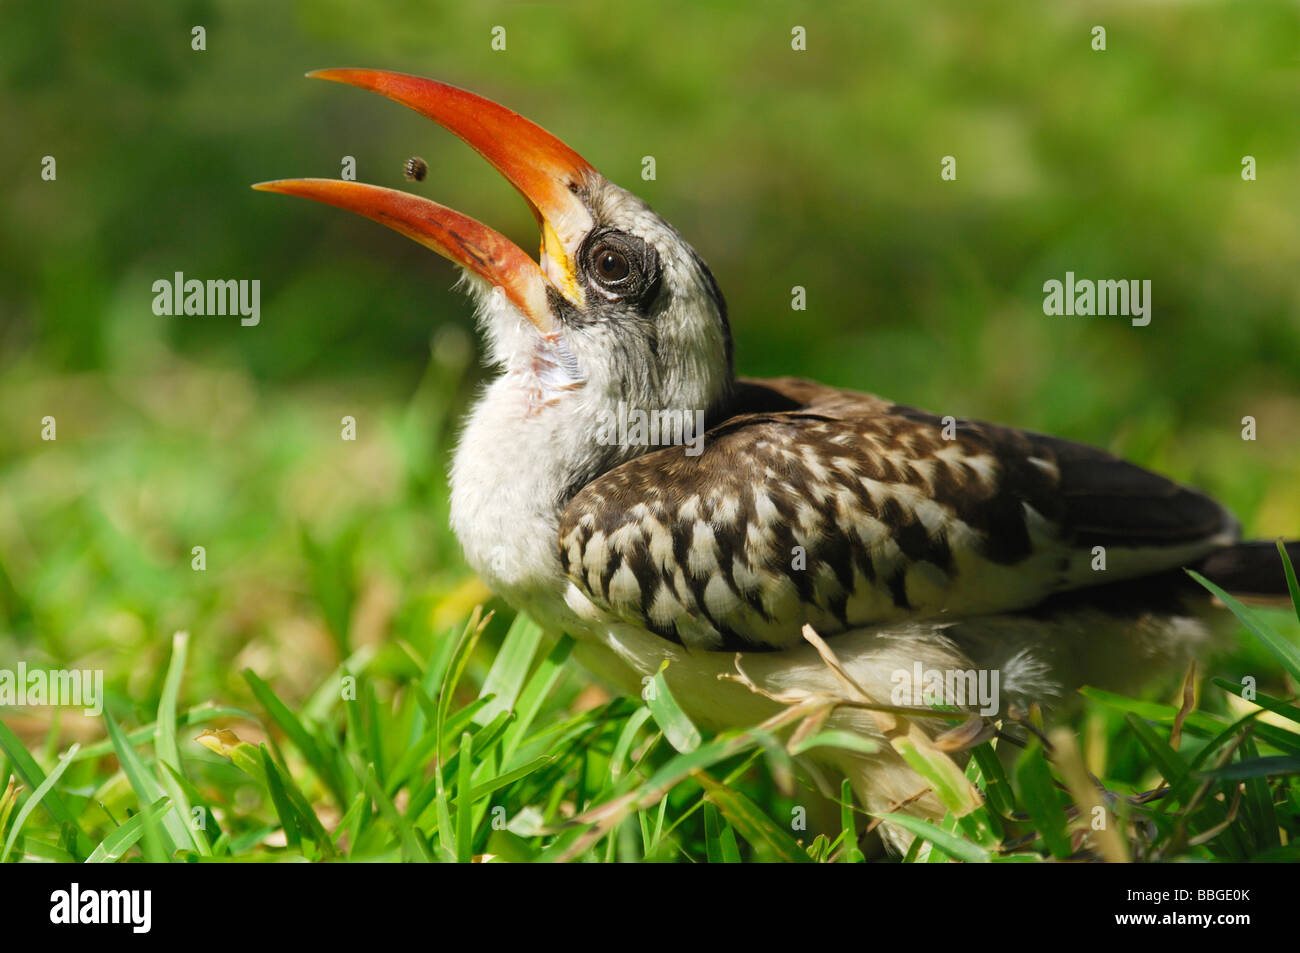 Red-billed Hornbill (Tochus erythrorhynchus) feeding on seeds in The Gambia - Stock Image